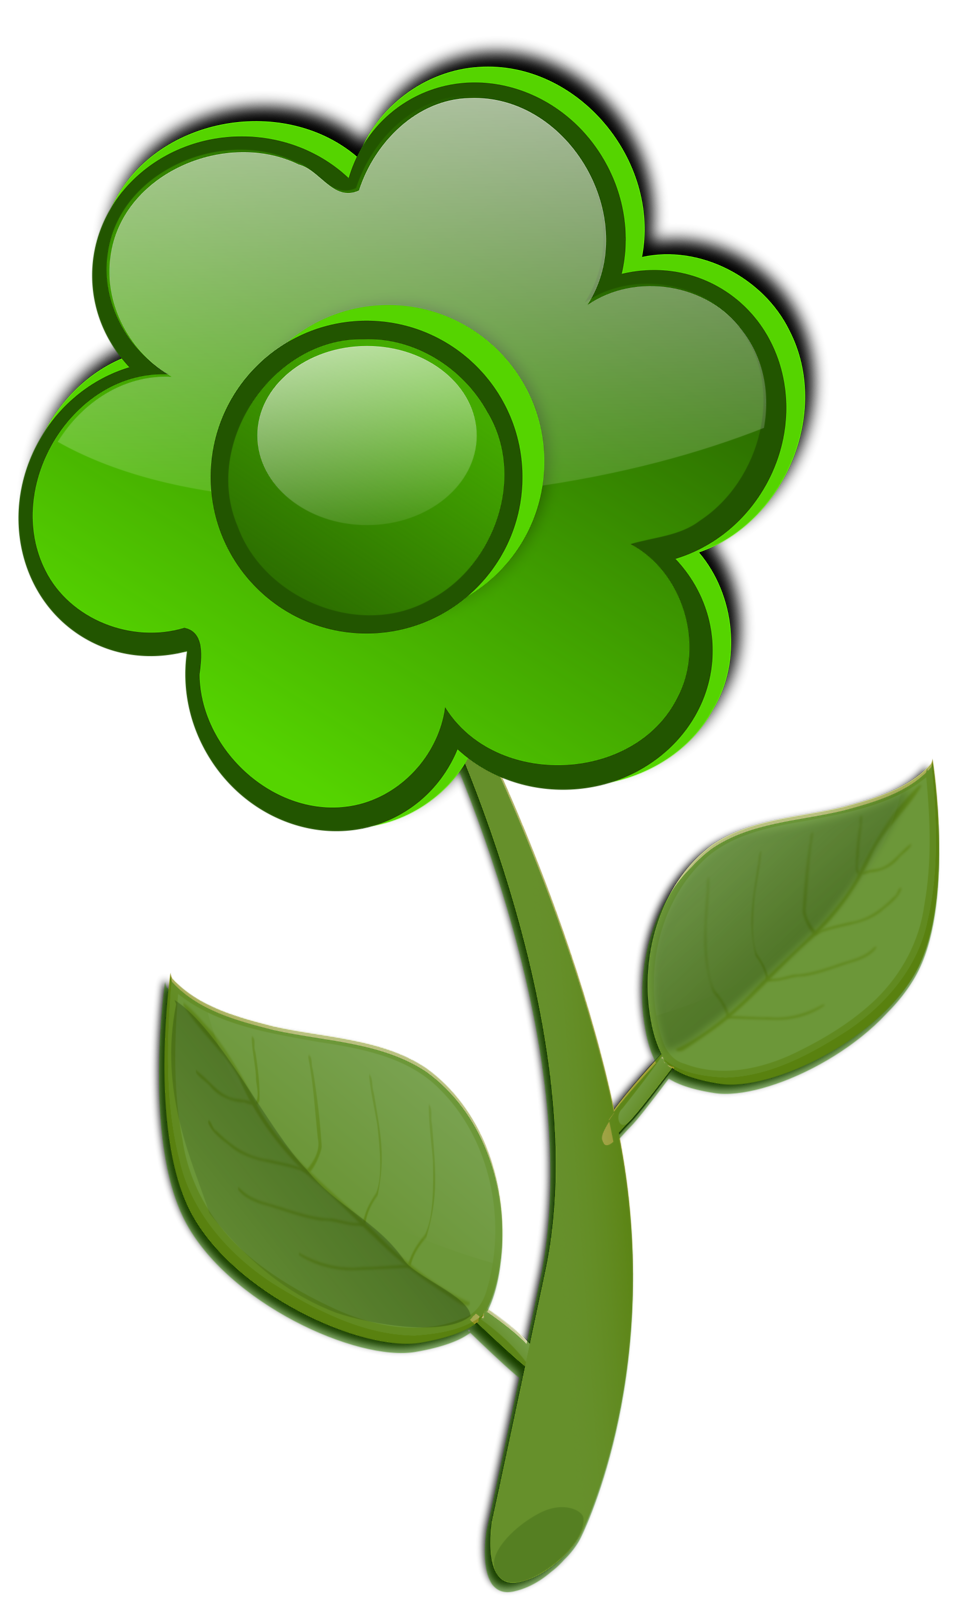 free green flower clipart - photo #7